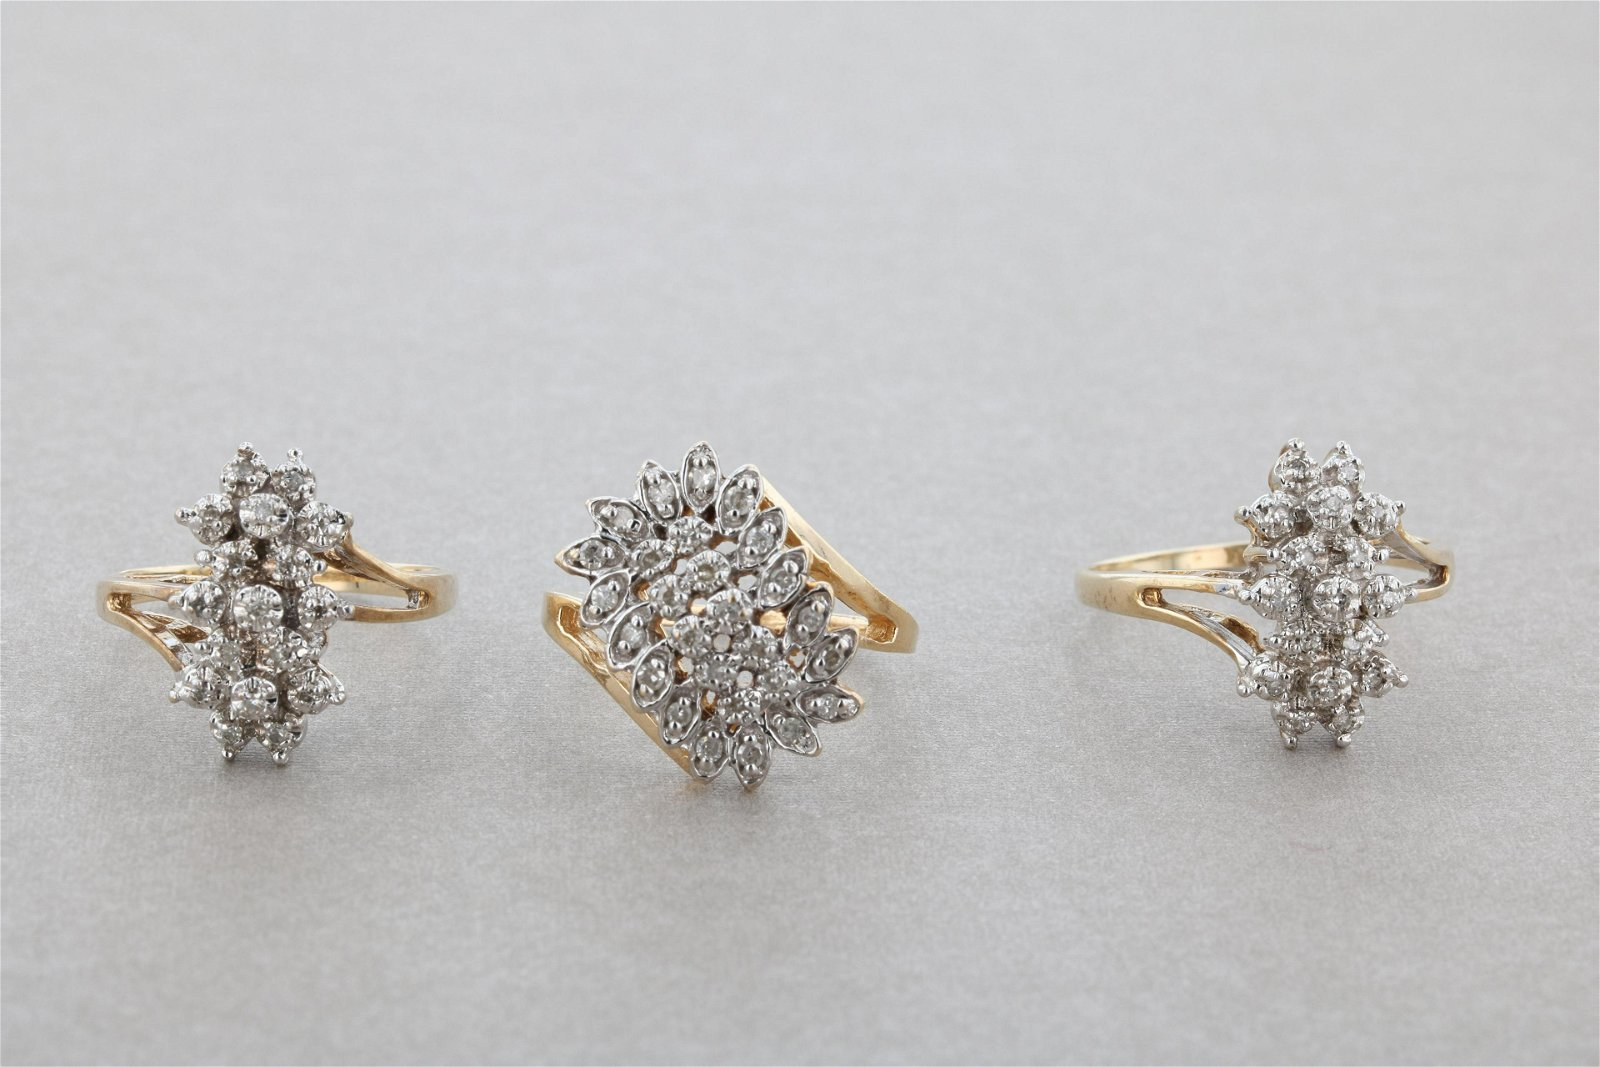 (3) Pc Lot of Diamond Cocktail Rings